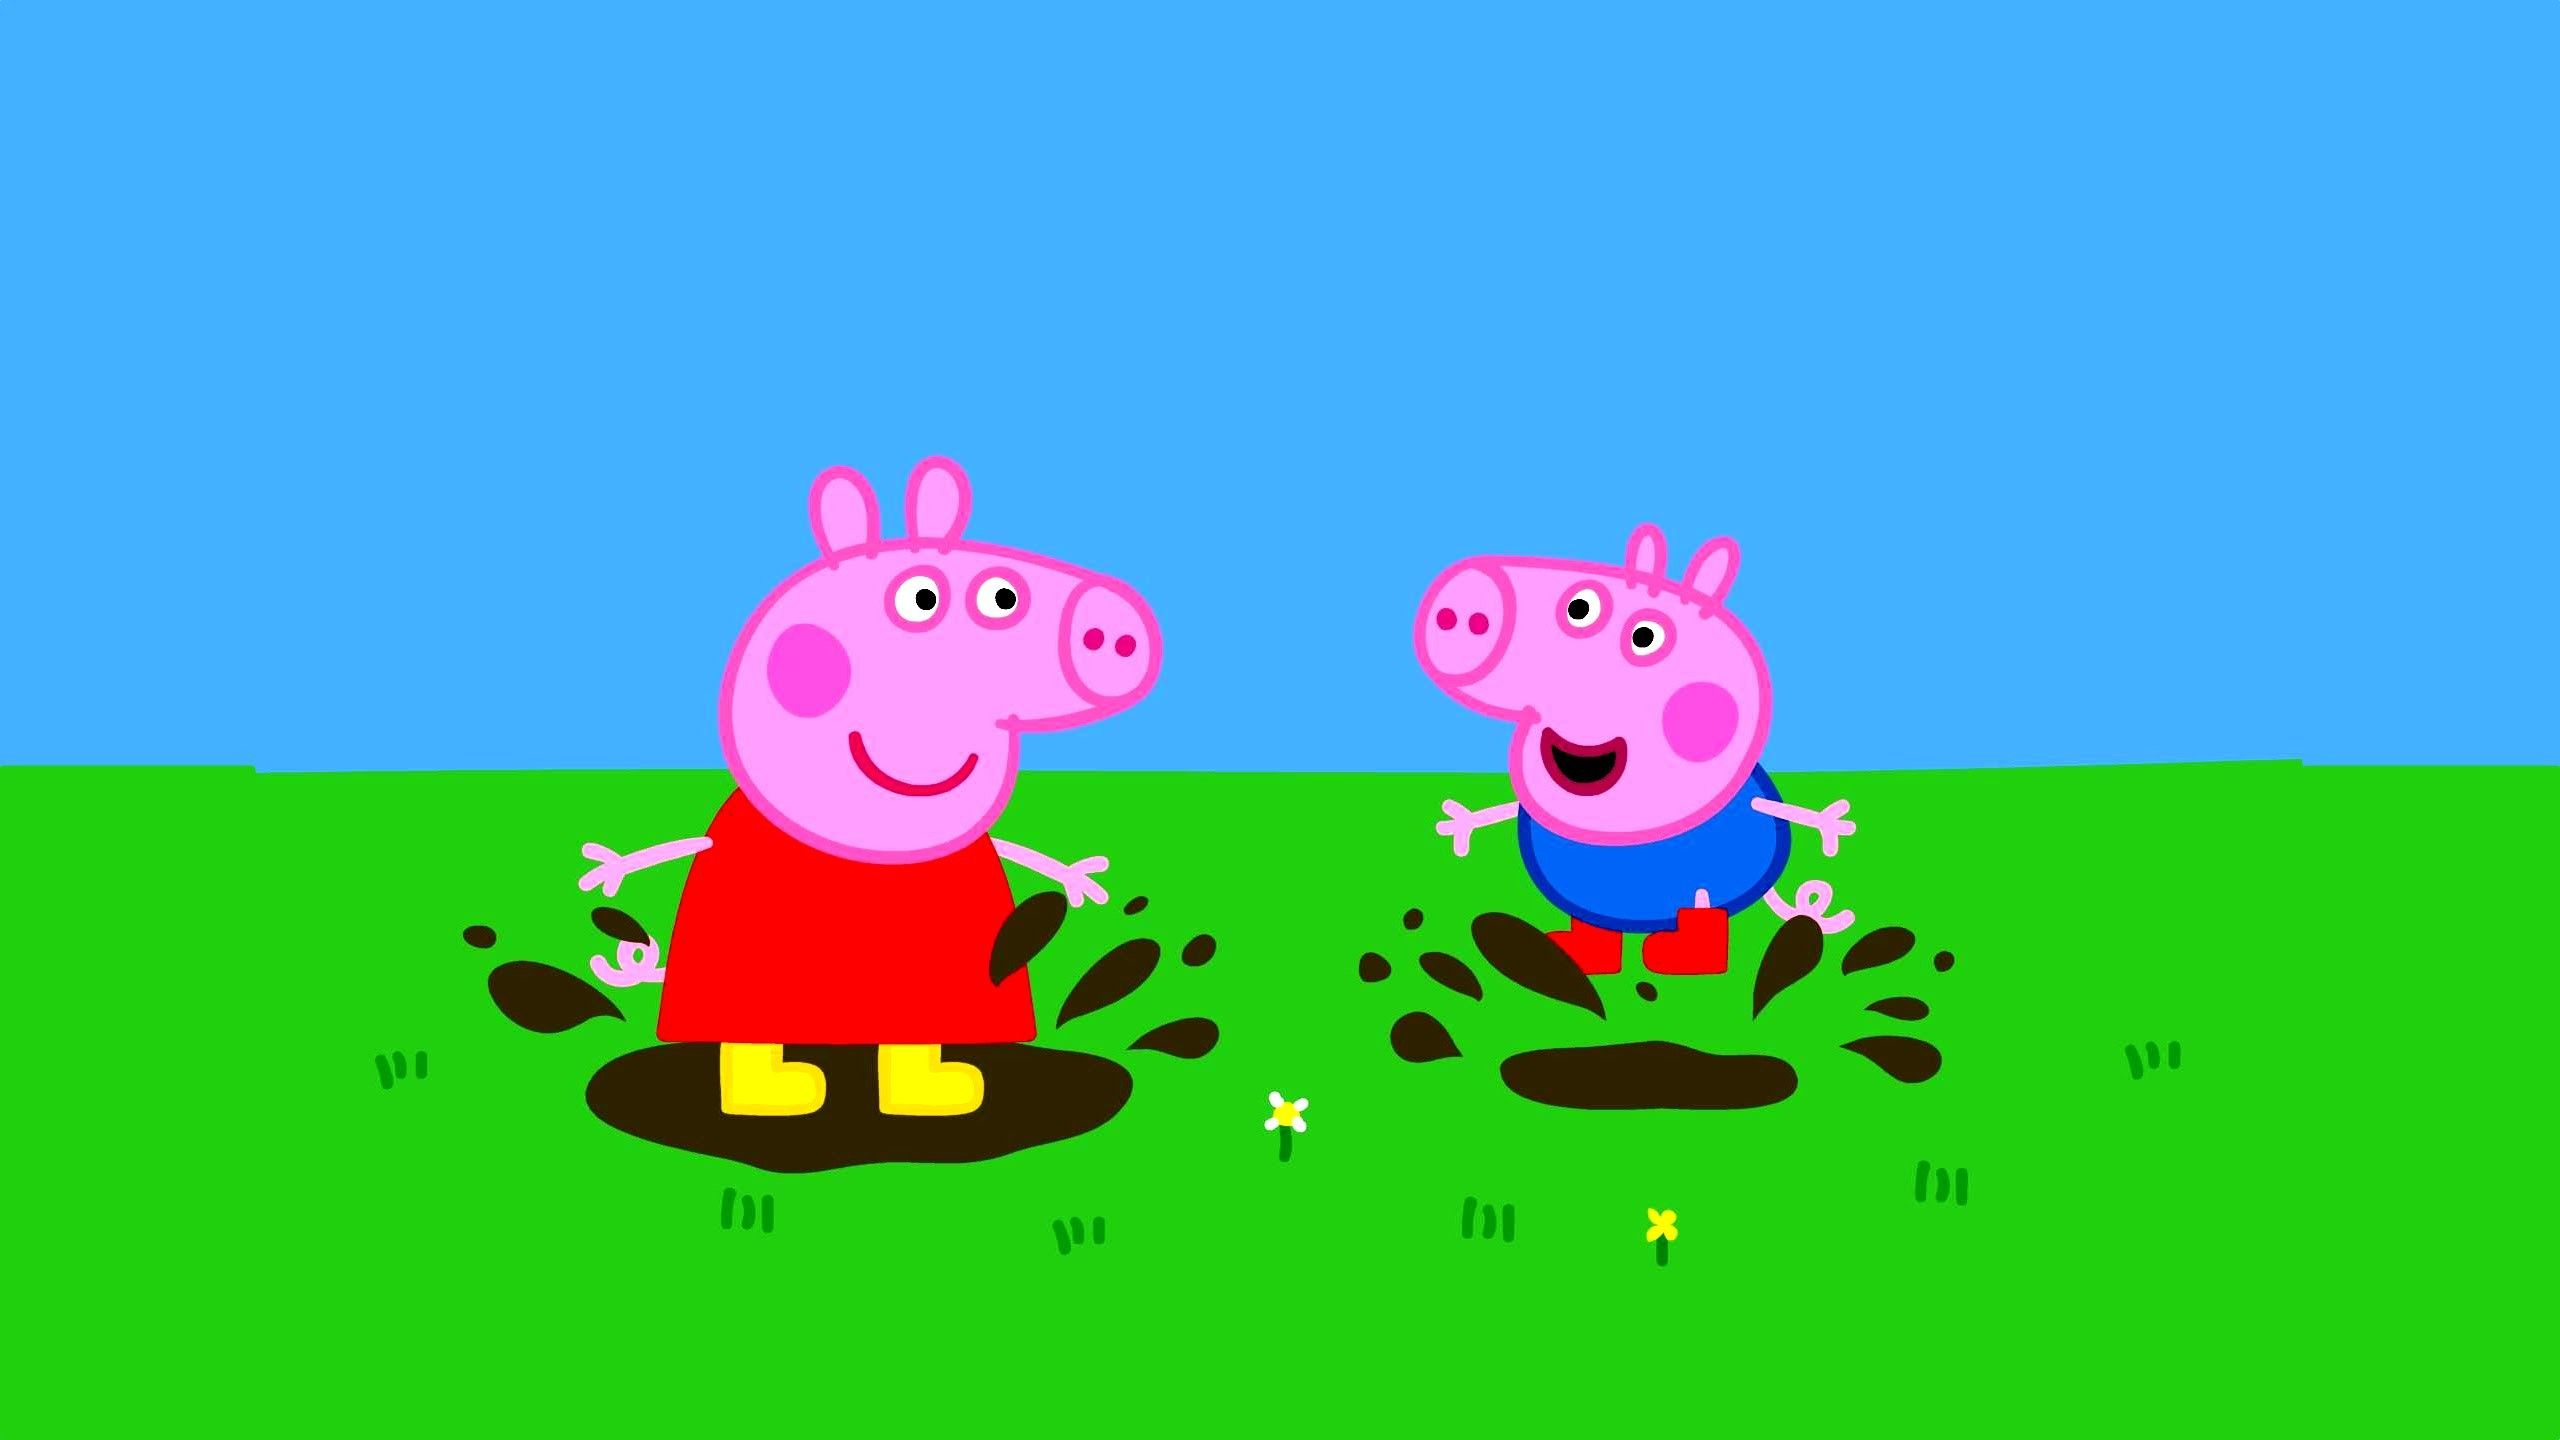 Peppa Pig Tablet Wallpapers Top Free Peppa Pig Tablet Backgrounds Wallpaperaccess